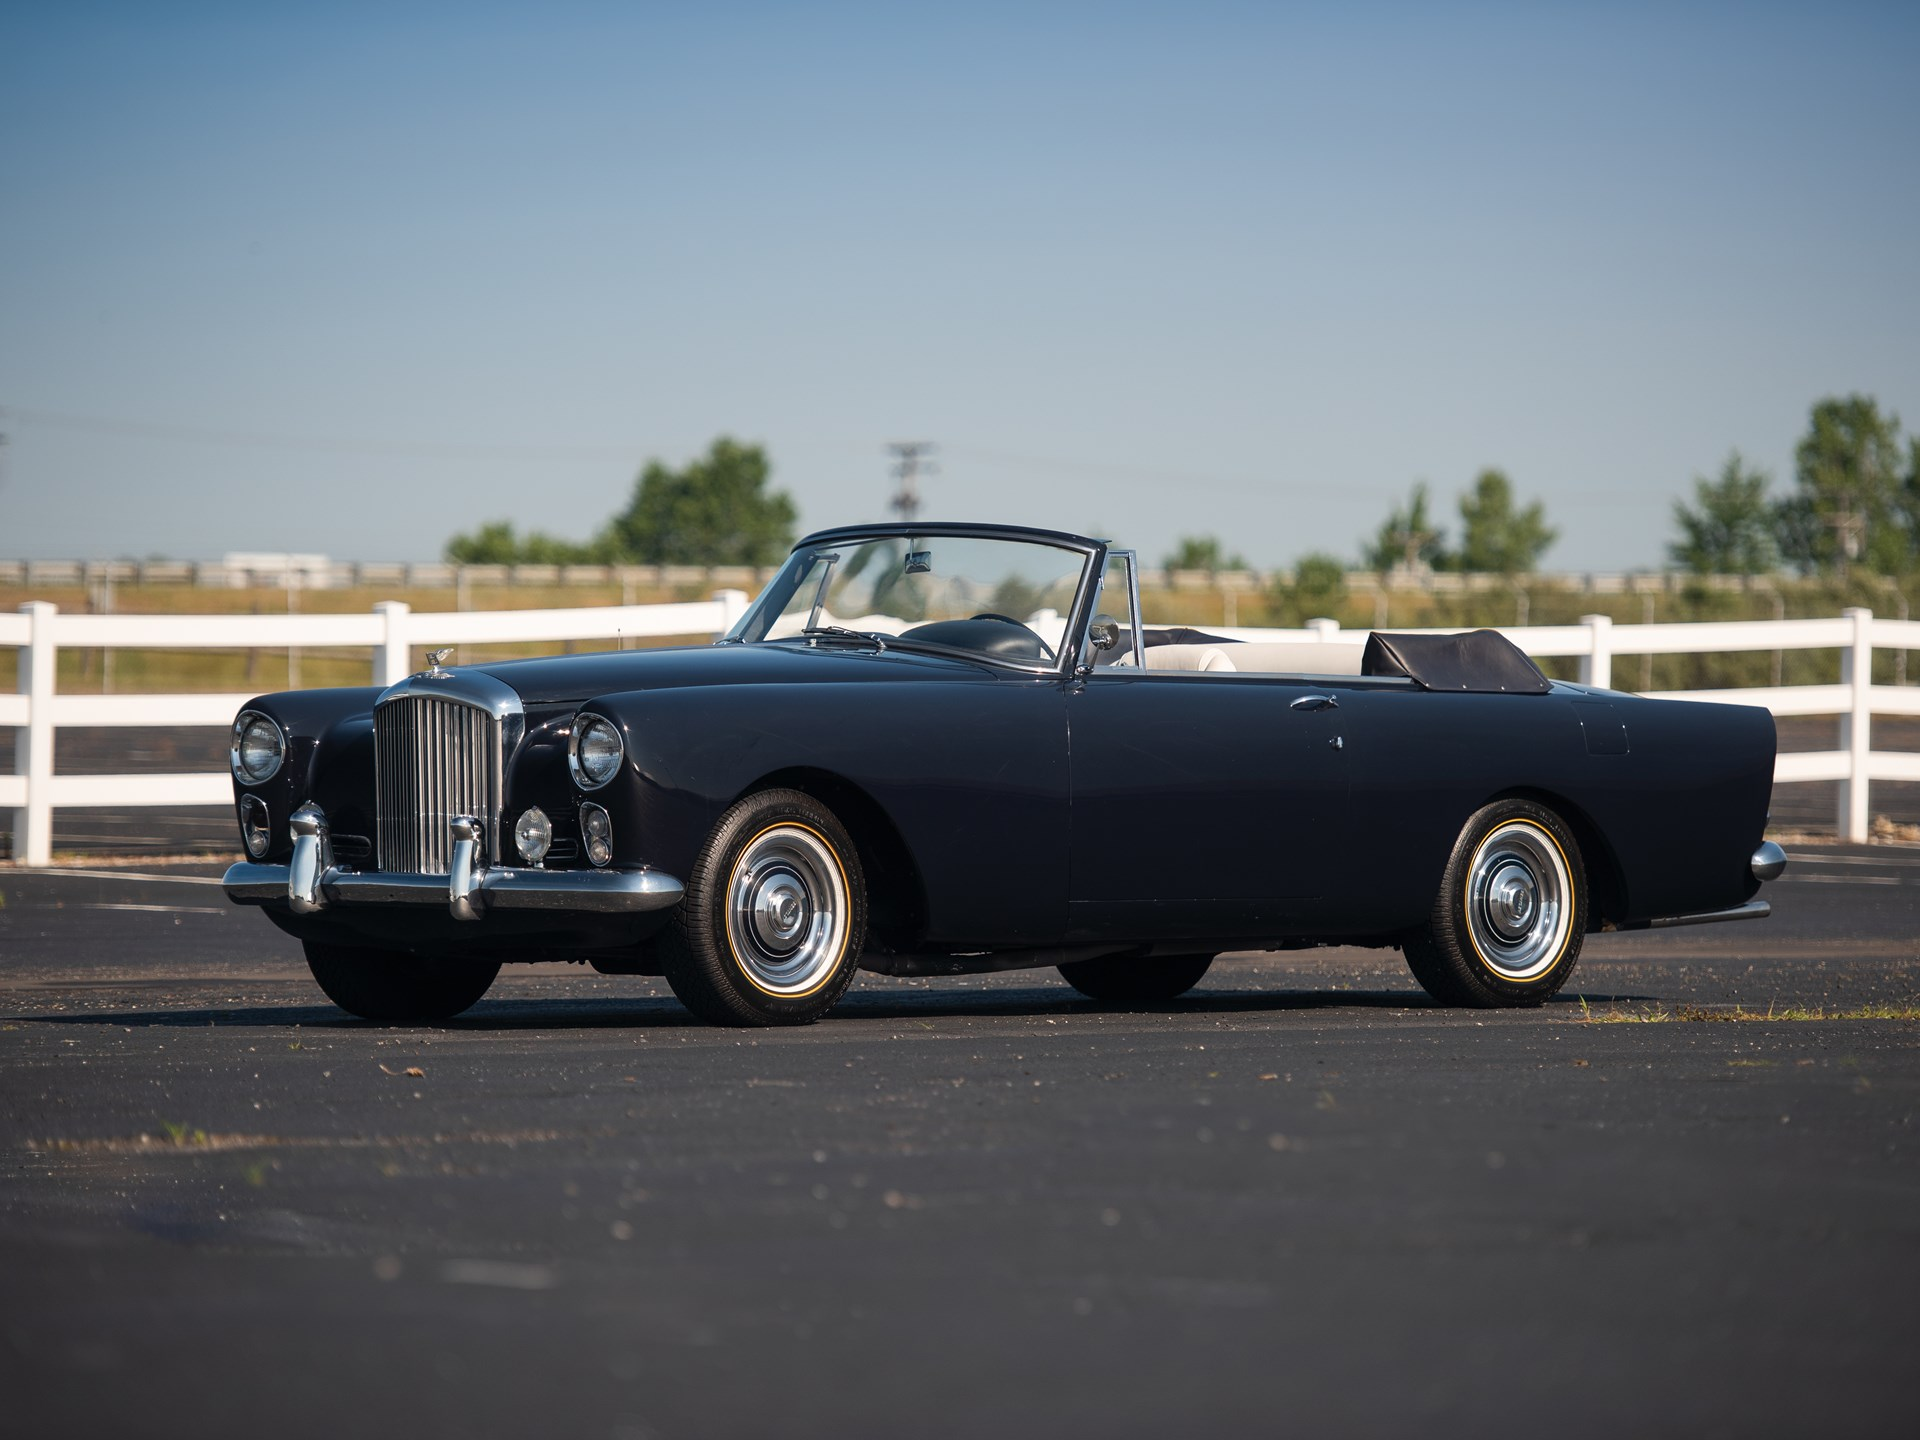 S2 Car Parking Rm Sotheby S 1959 Bentley S2 Continental Drophead Coupe By